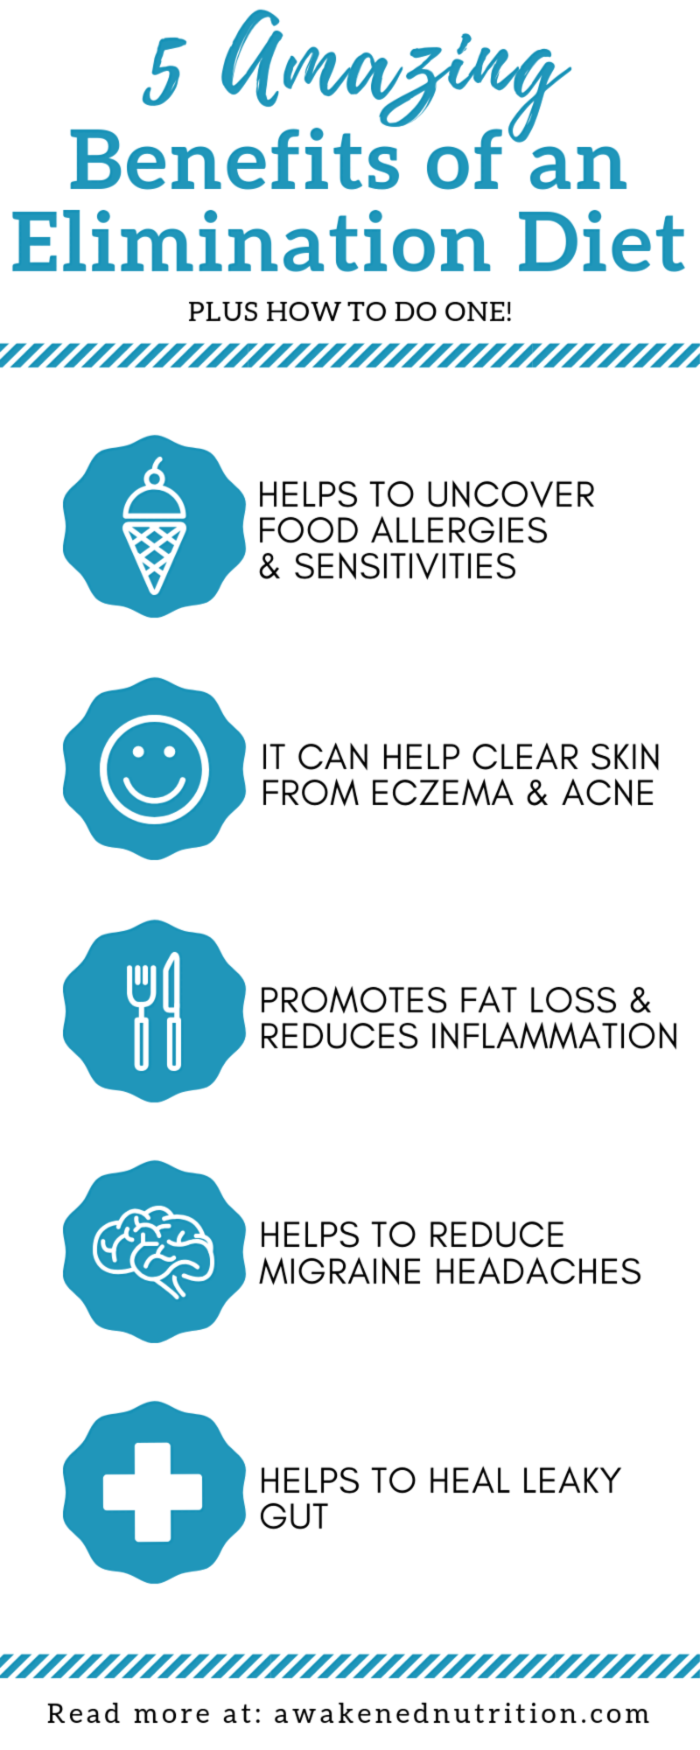 Learn 5 benefits of doing an elimination diet to improve your health, clear your skin and heal your gut. Discover why an elimination diet is important plus how it works.